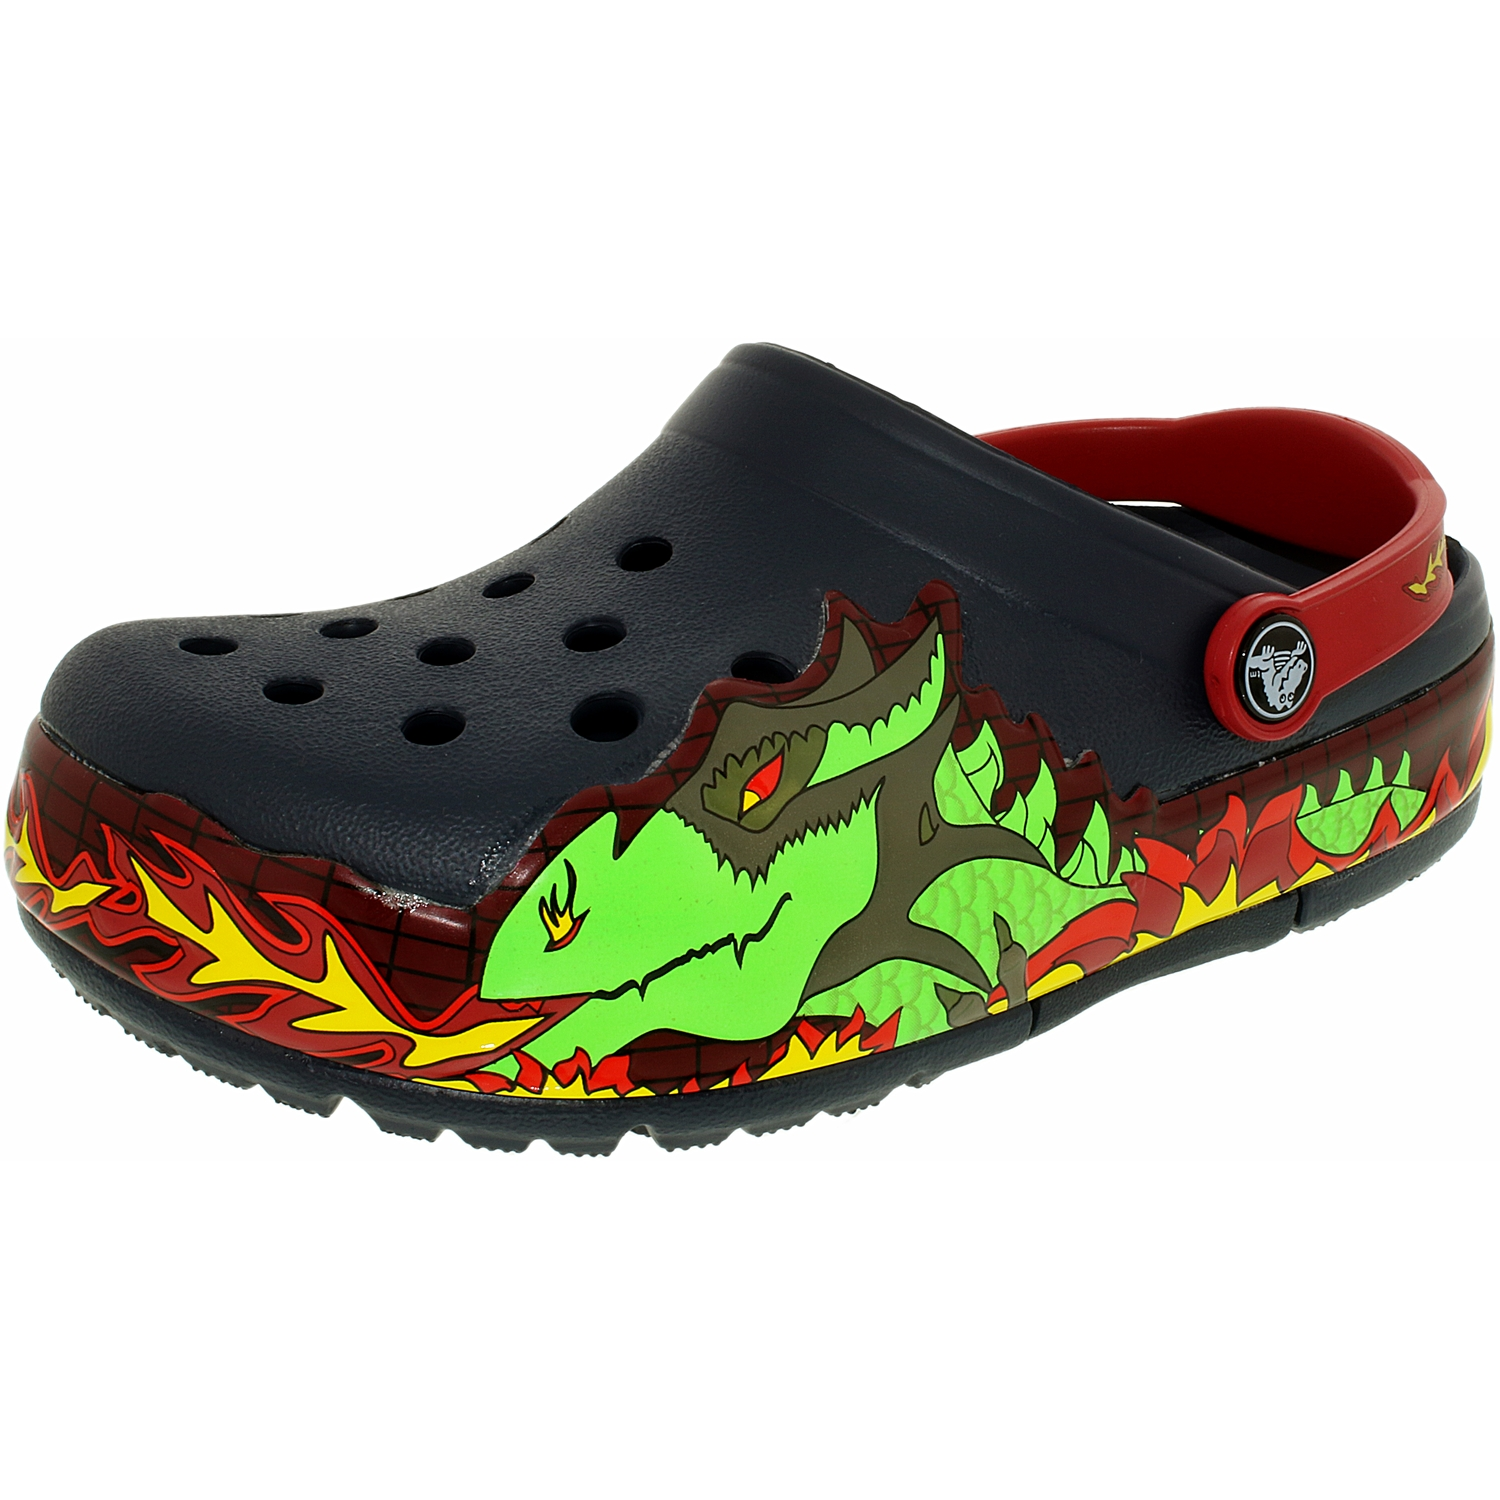 Crocs Boy's Kids Crocslights Fire Dragon Ankle-High Rubber Flat Shoe by Crocs